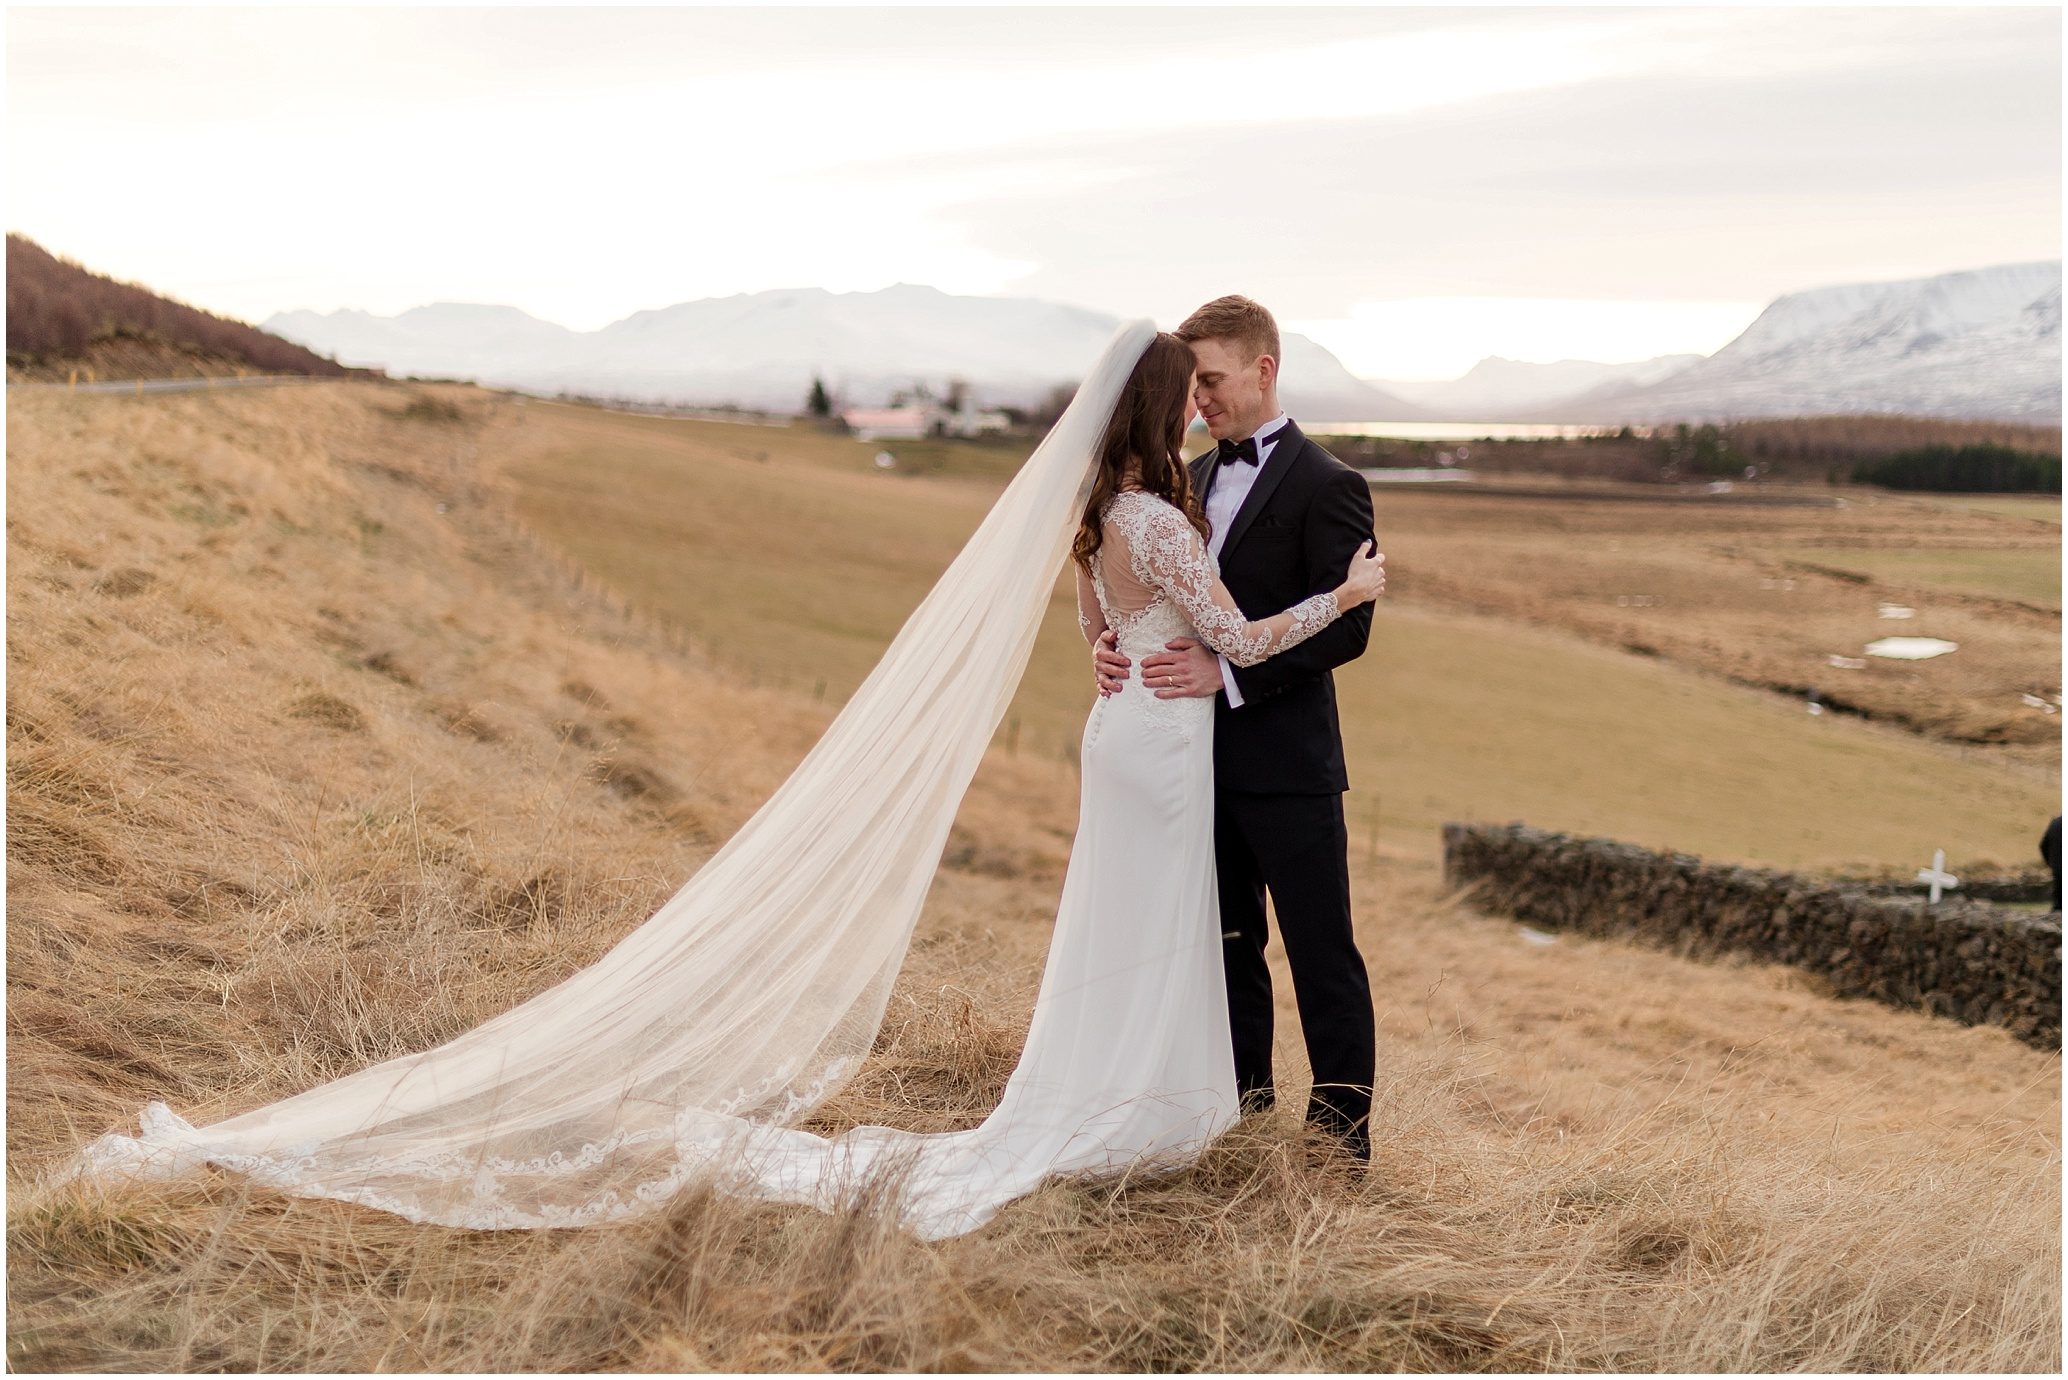 Hannah Leigh Photography Akureyri Iceland Wedding_3207.jpg